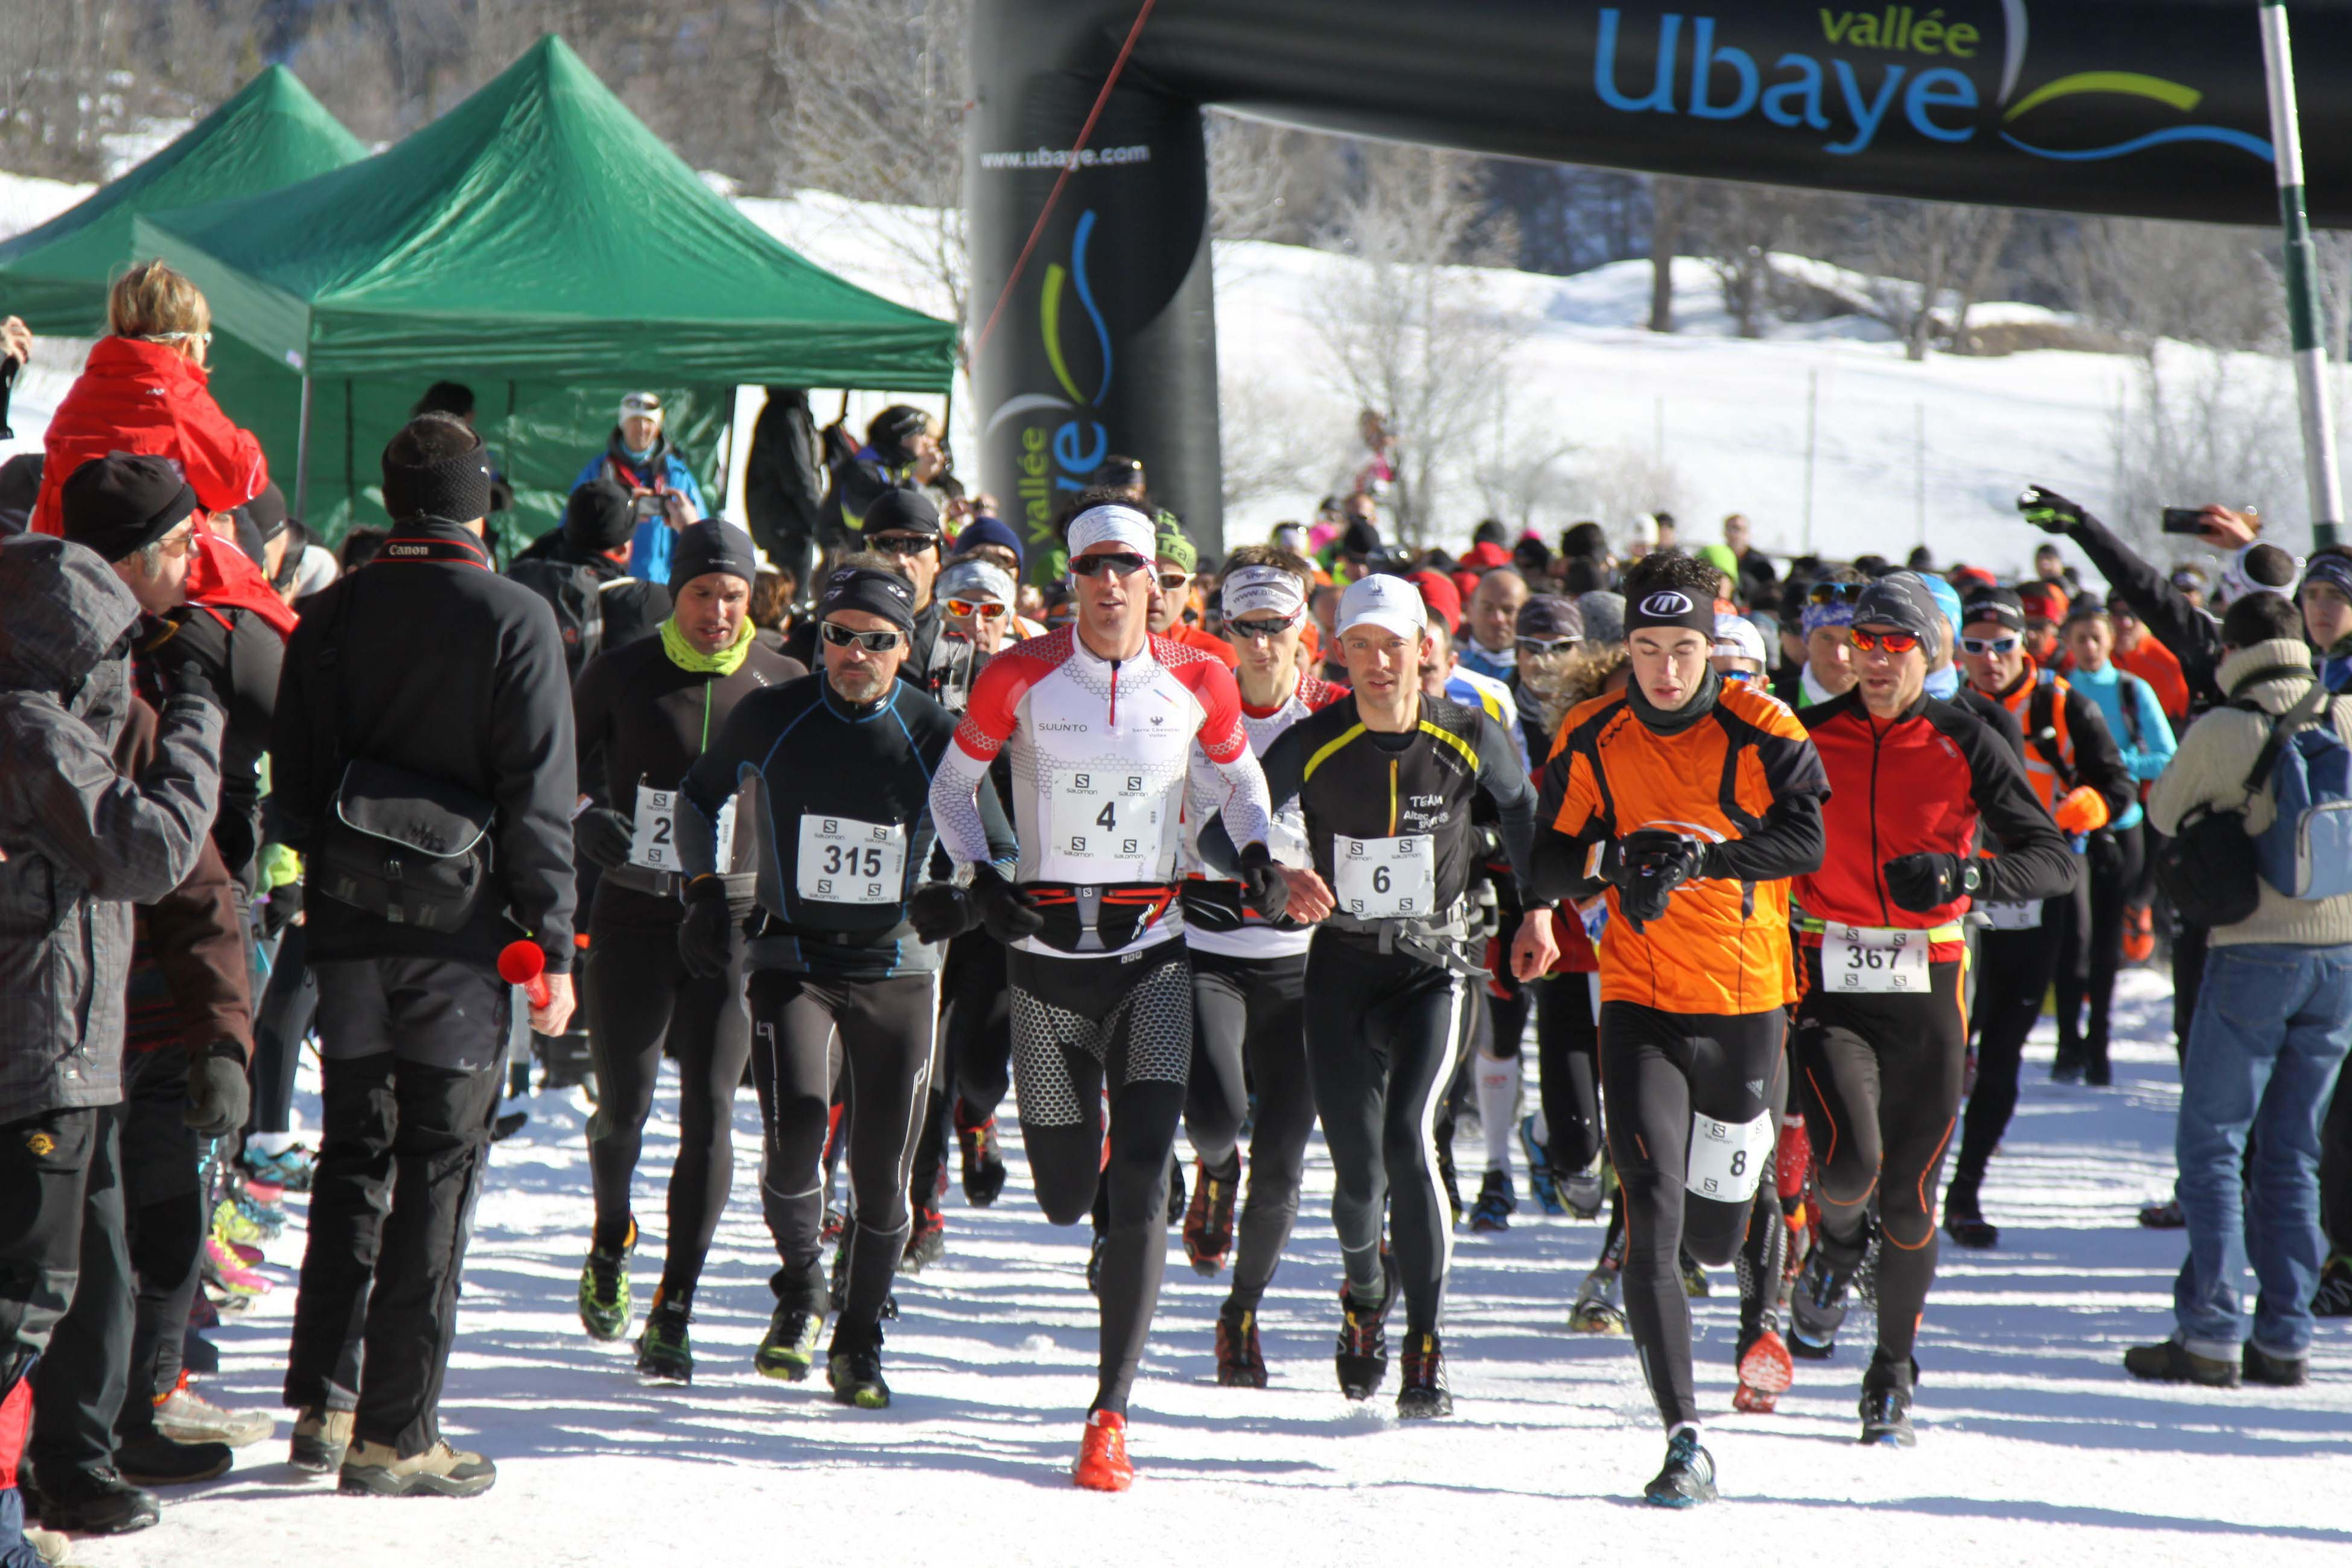 3 Ambiance Ubaye Snow Trail Salomon photo Robert Goin - PRESENTATION DE L'UBAYE SNOW TRAIL SALOMON / 14-02-16